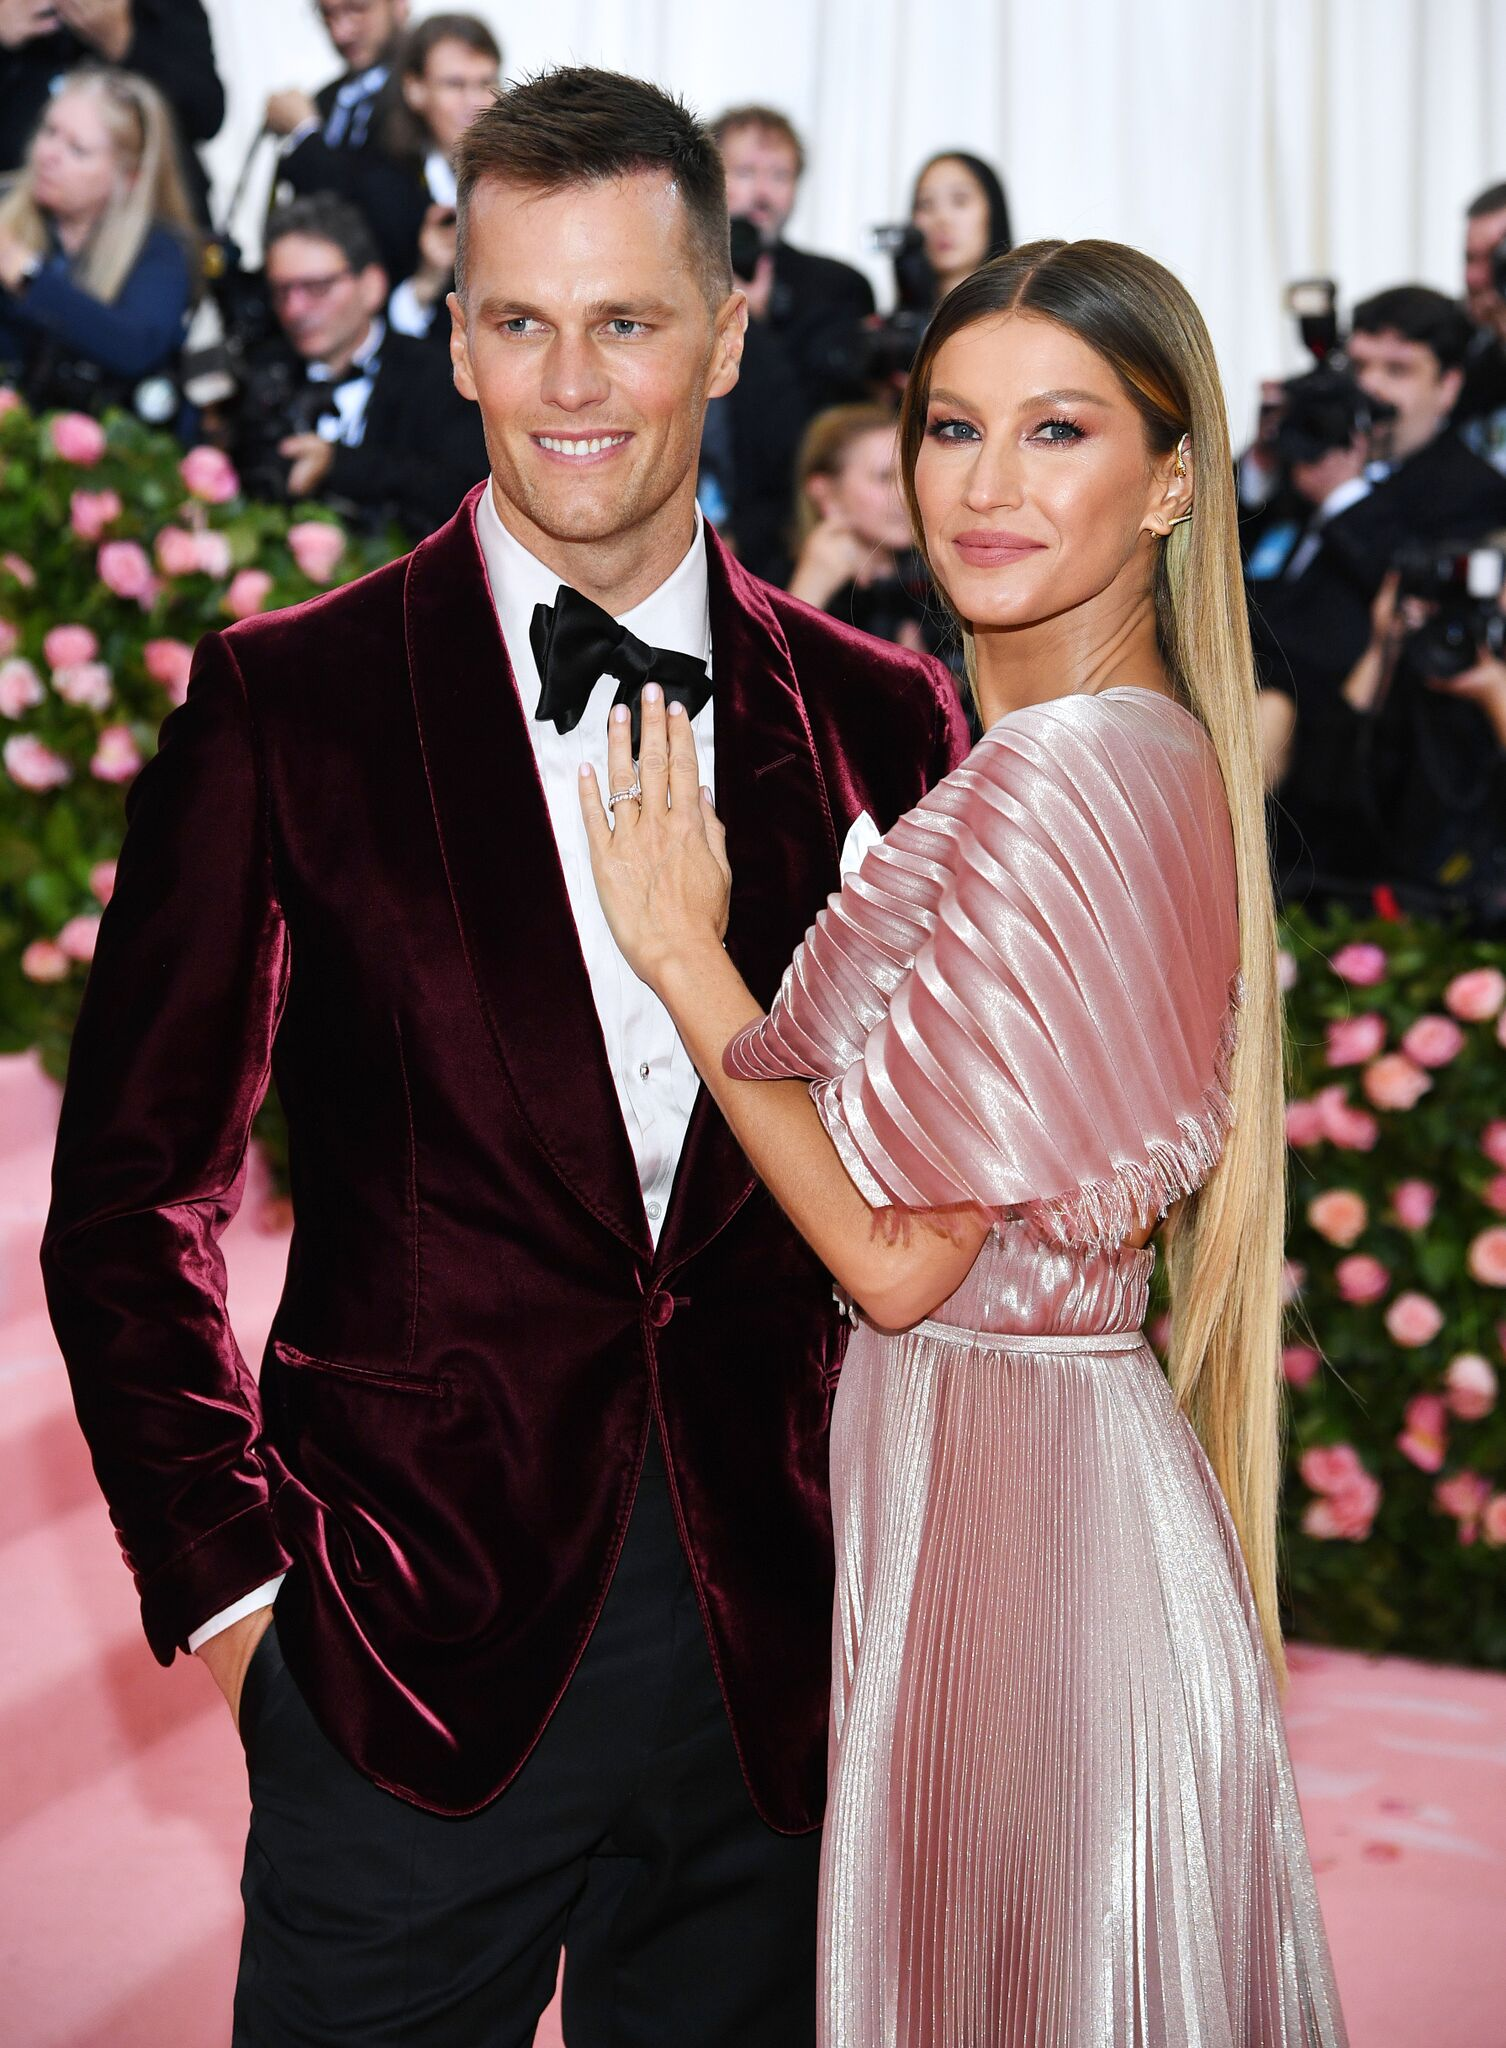 Gisele Bündchen and Tom Brady attend The 2019 Met Gala Celebrating Camp: Notes on Fashion at Metropolitan Museum of Art | Getty Images